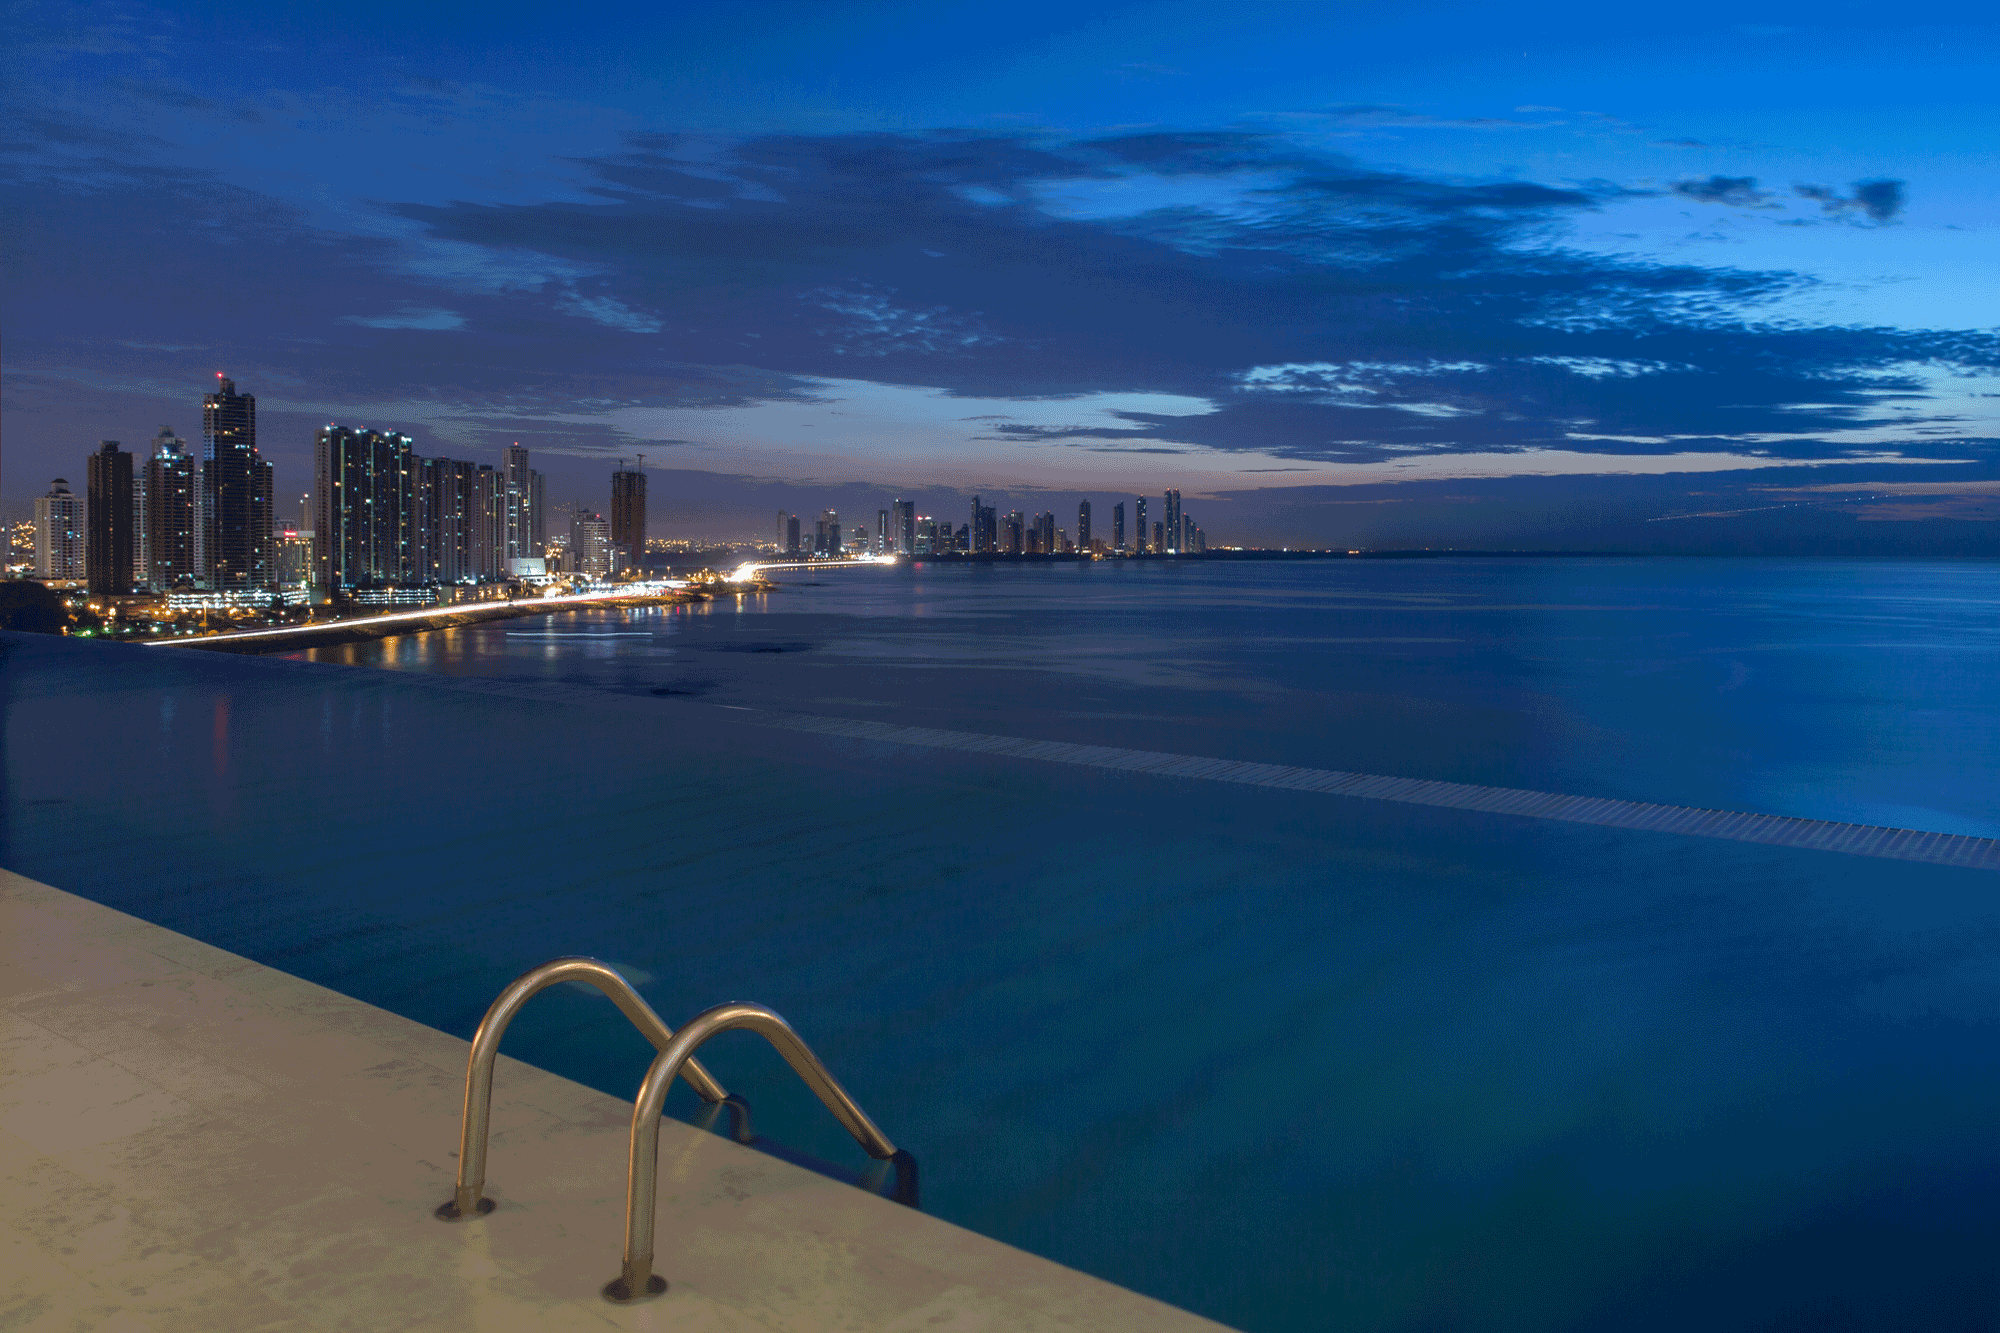 Pool at the hotel with Panama City skyline